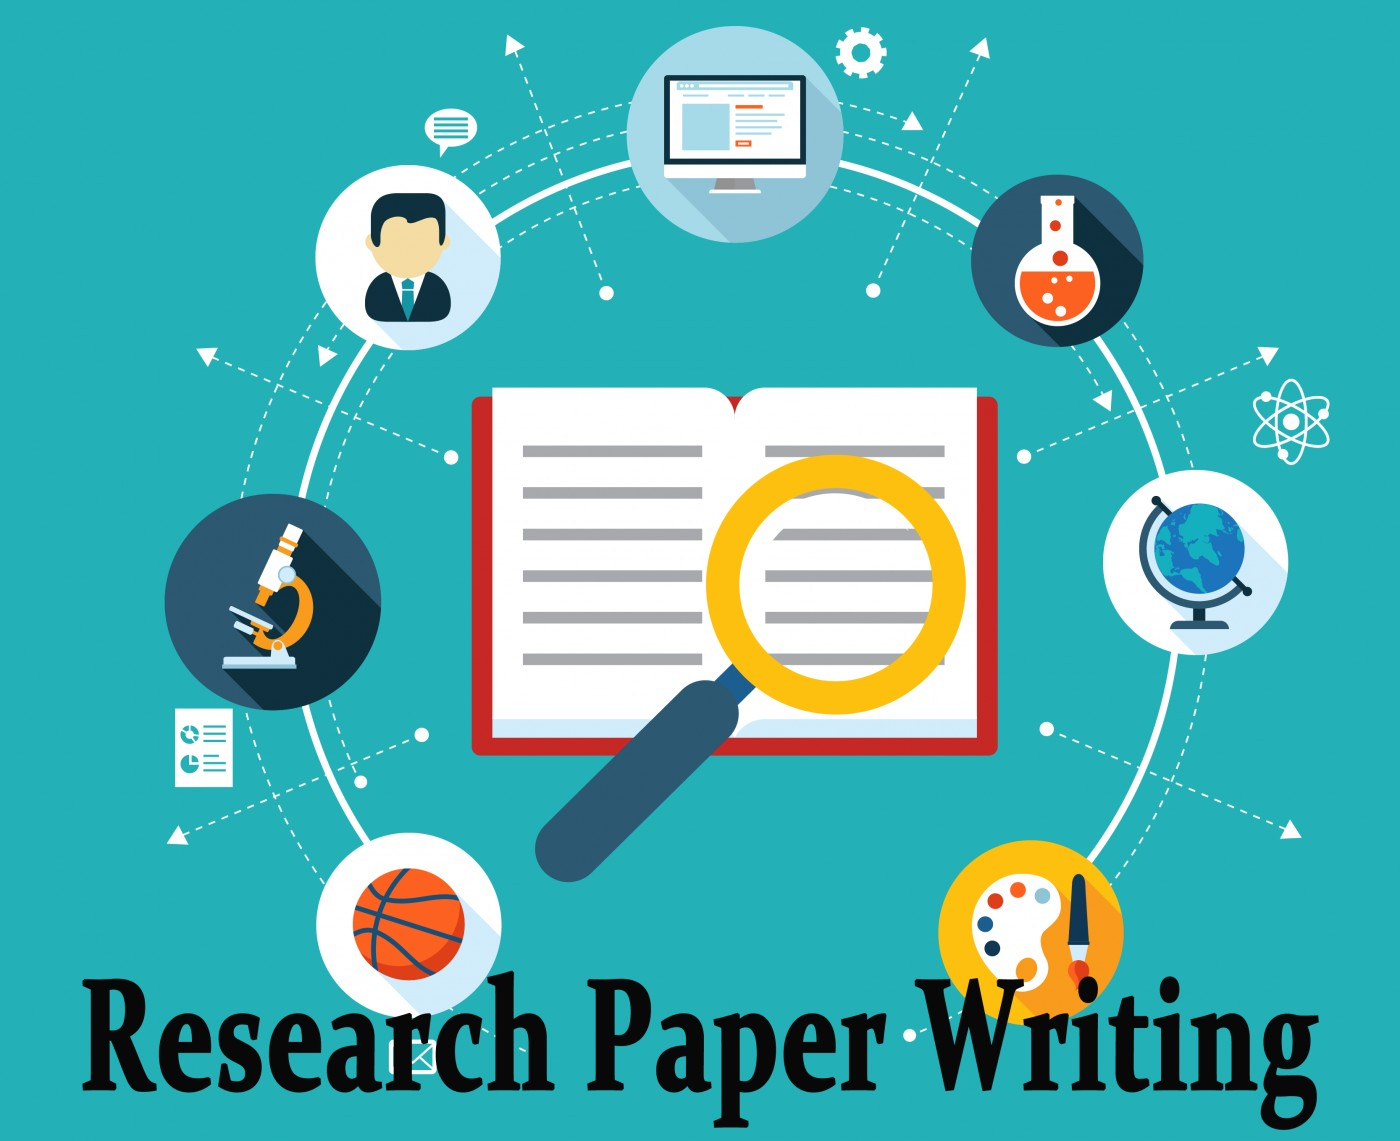 022 Writting Research Paper 503 Effective Writing Dreaded A Example Of Proposal Apa Format Outline Conclusion 1400